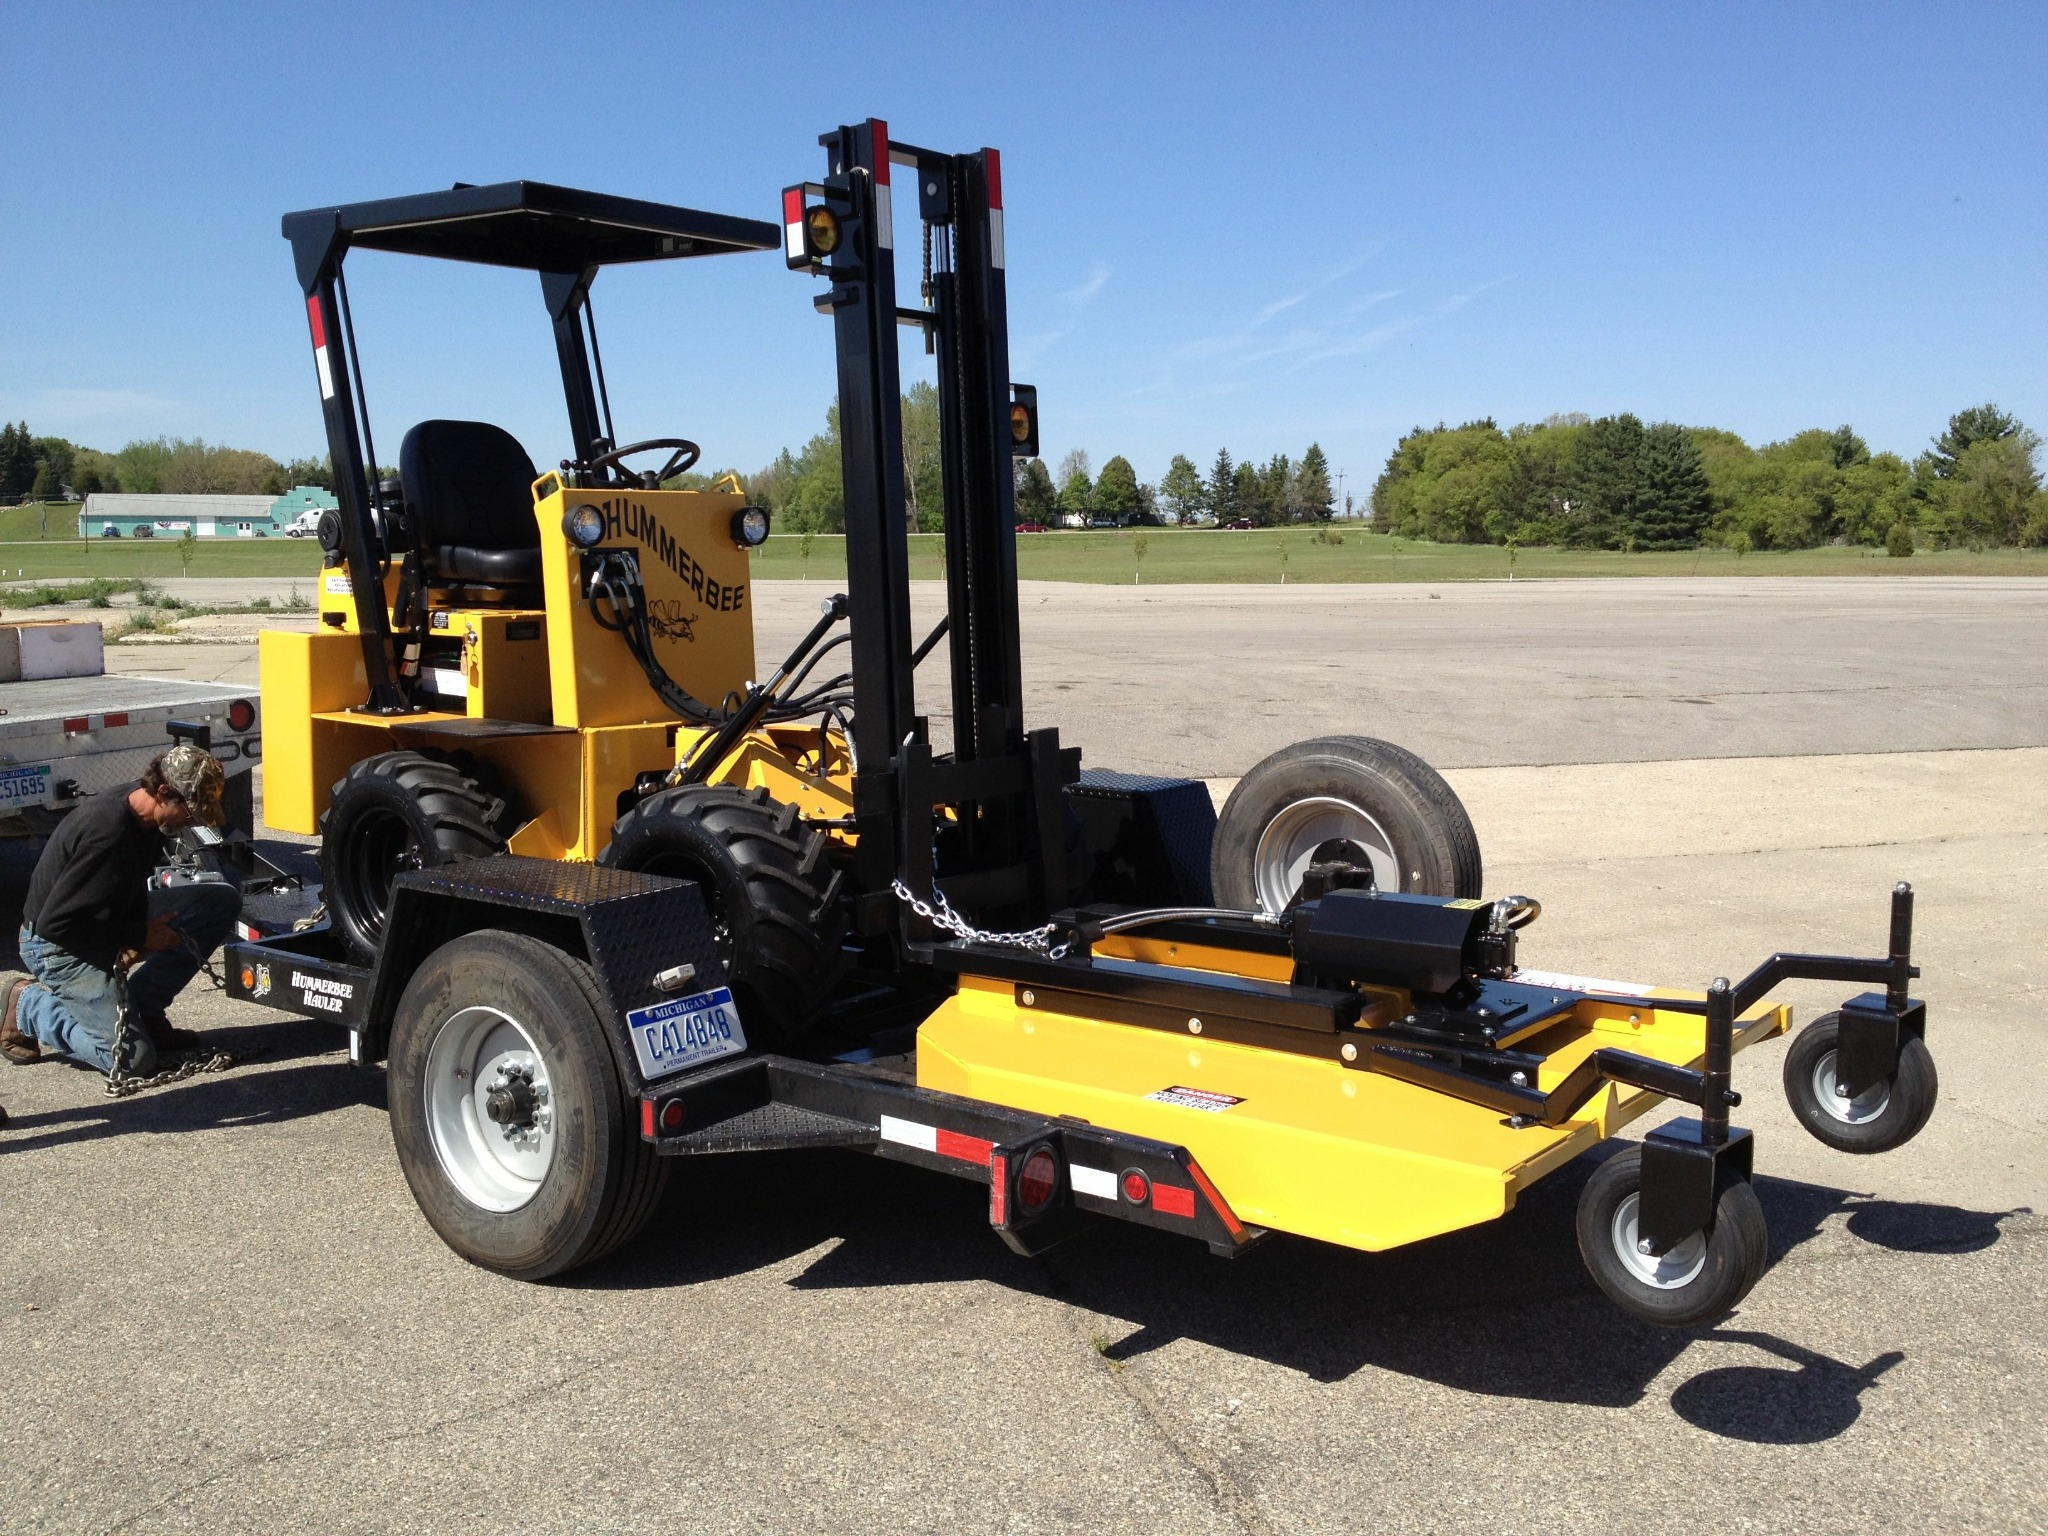 A O Forklift On Twitter Loading Up A Turbo And Mower Onto The Hummerbee Hauler Trailer Http T Co Kxcwwdxz